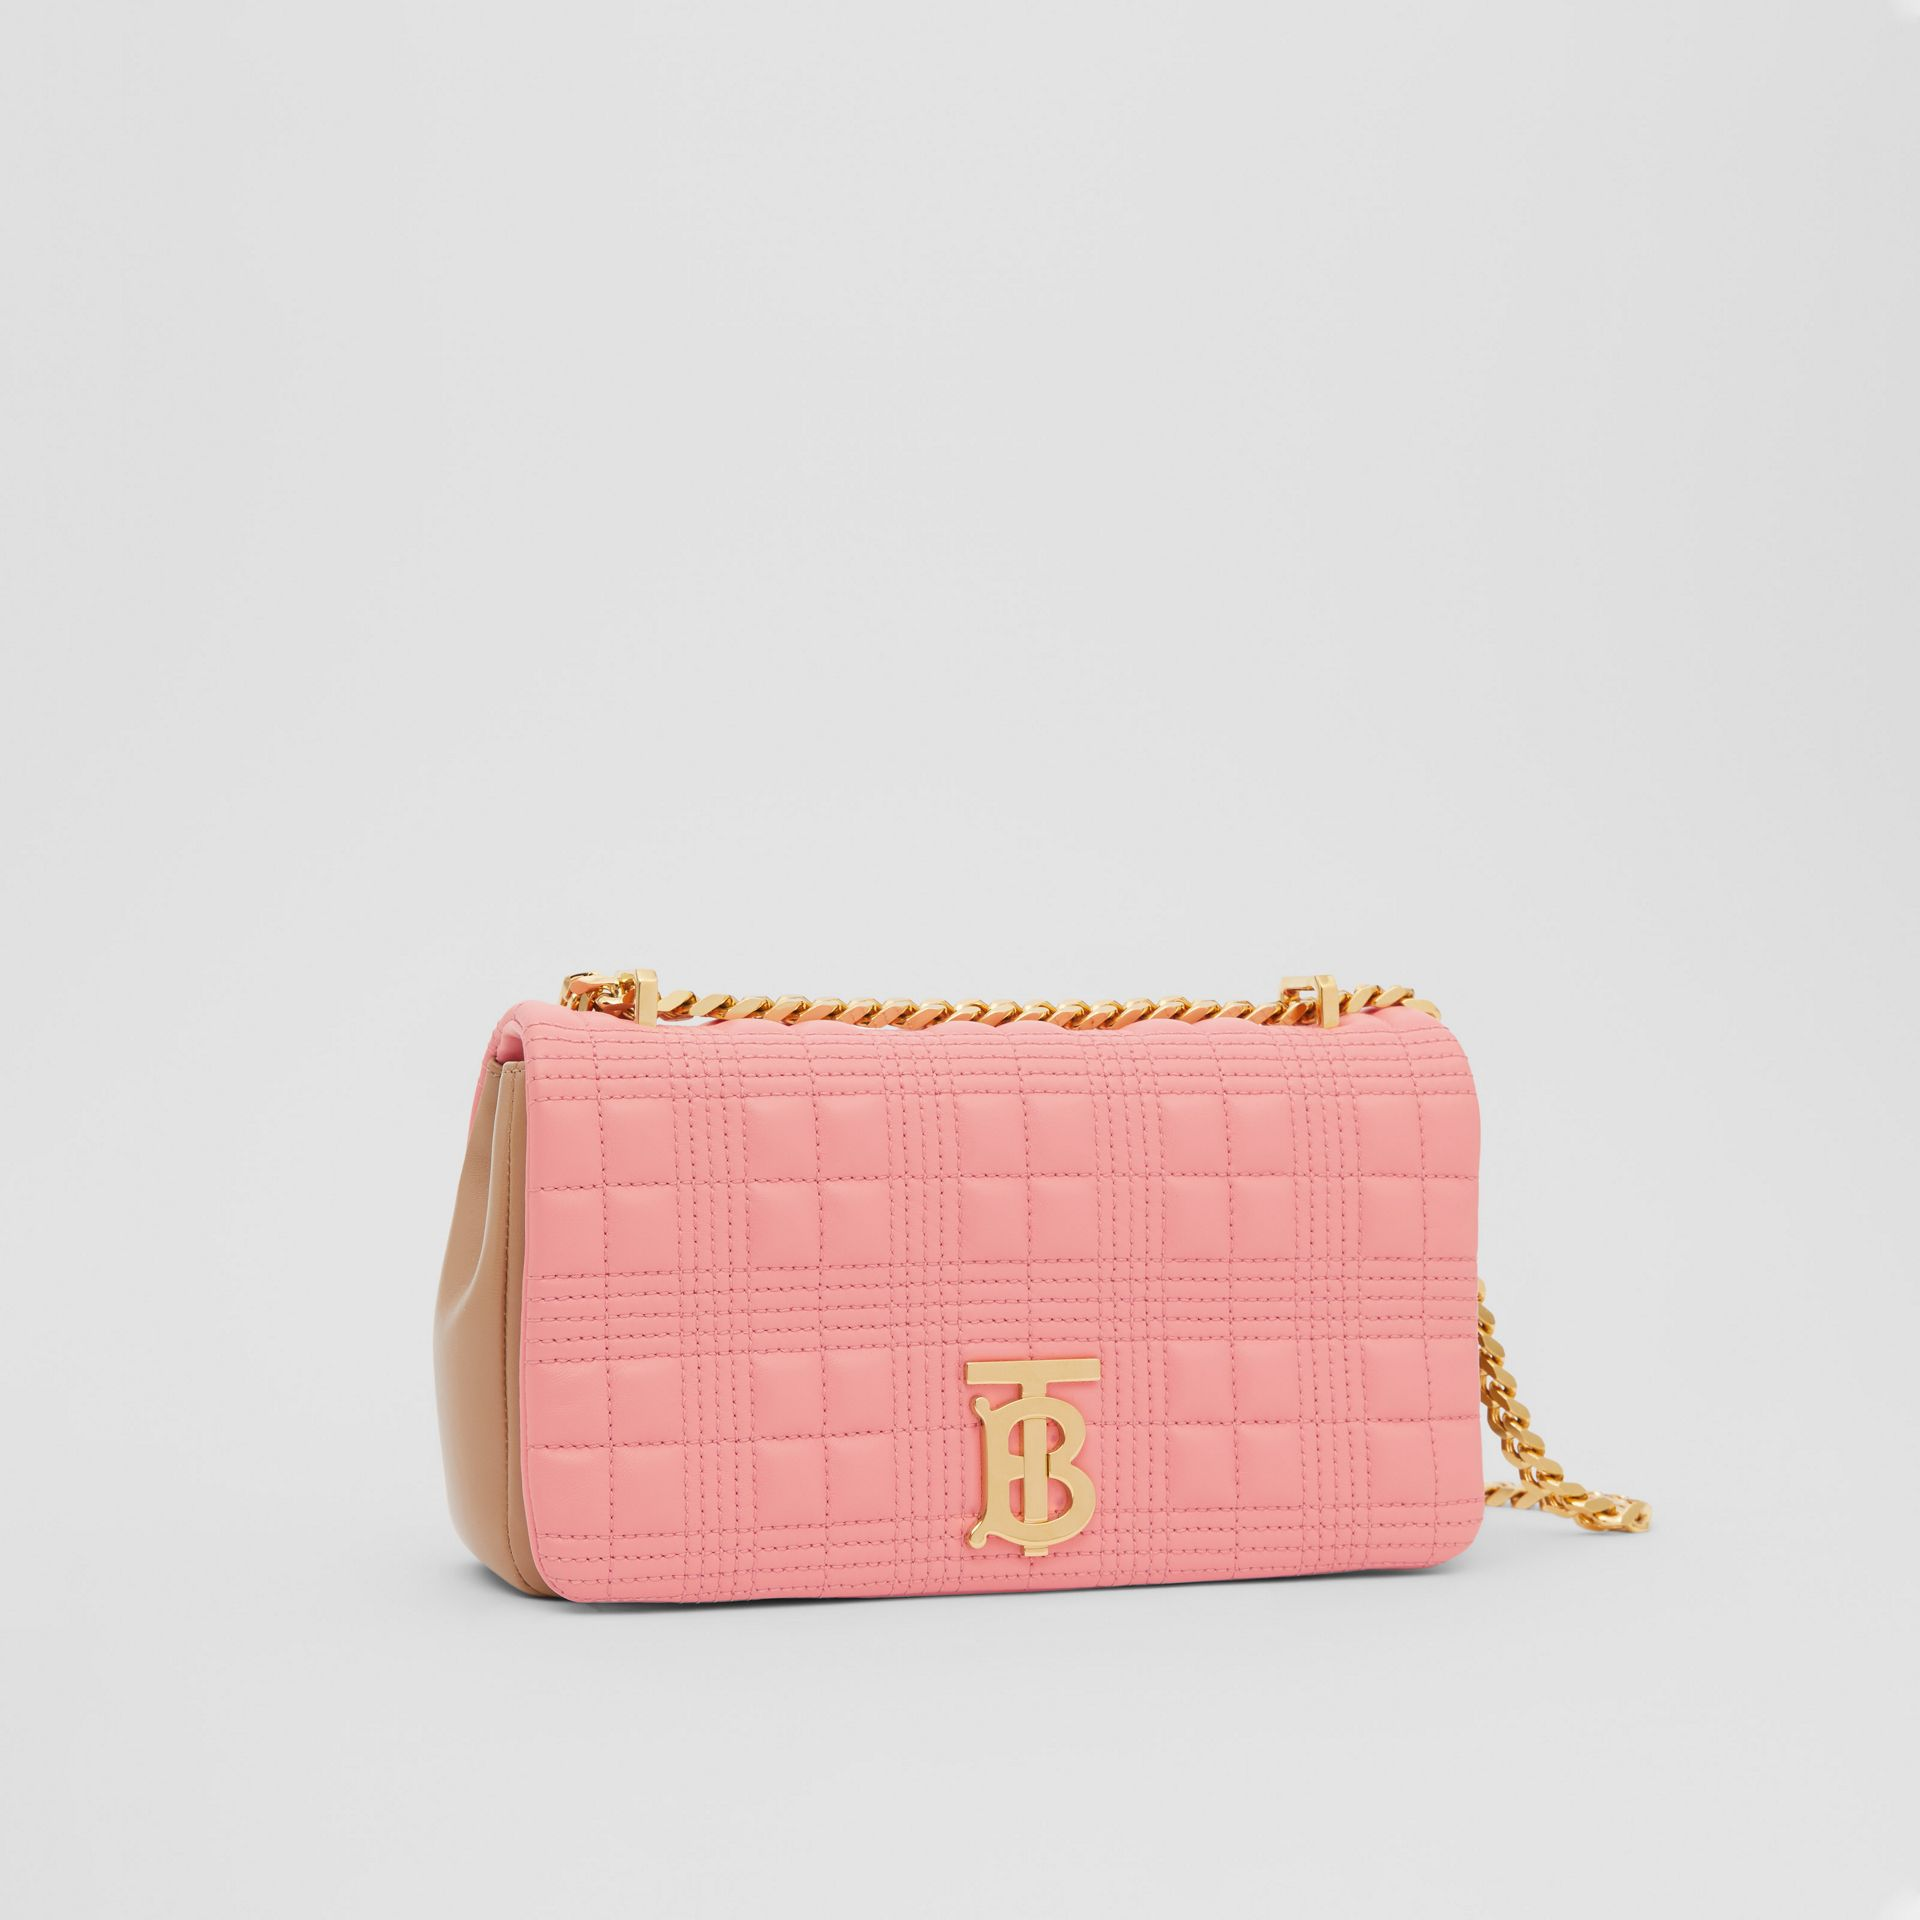 Small Quilted Two-tone Lambskin Lola Bag in Peony/camel - Women | Burberry United Kingdom - gallery image 6